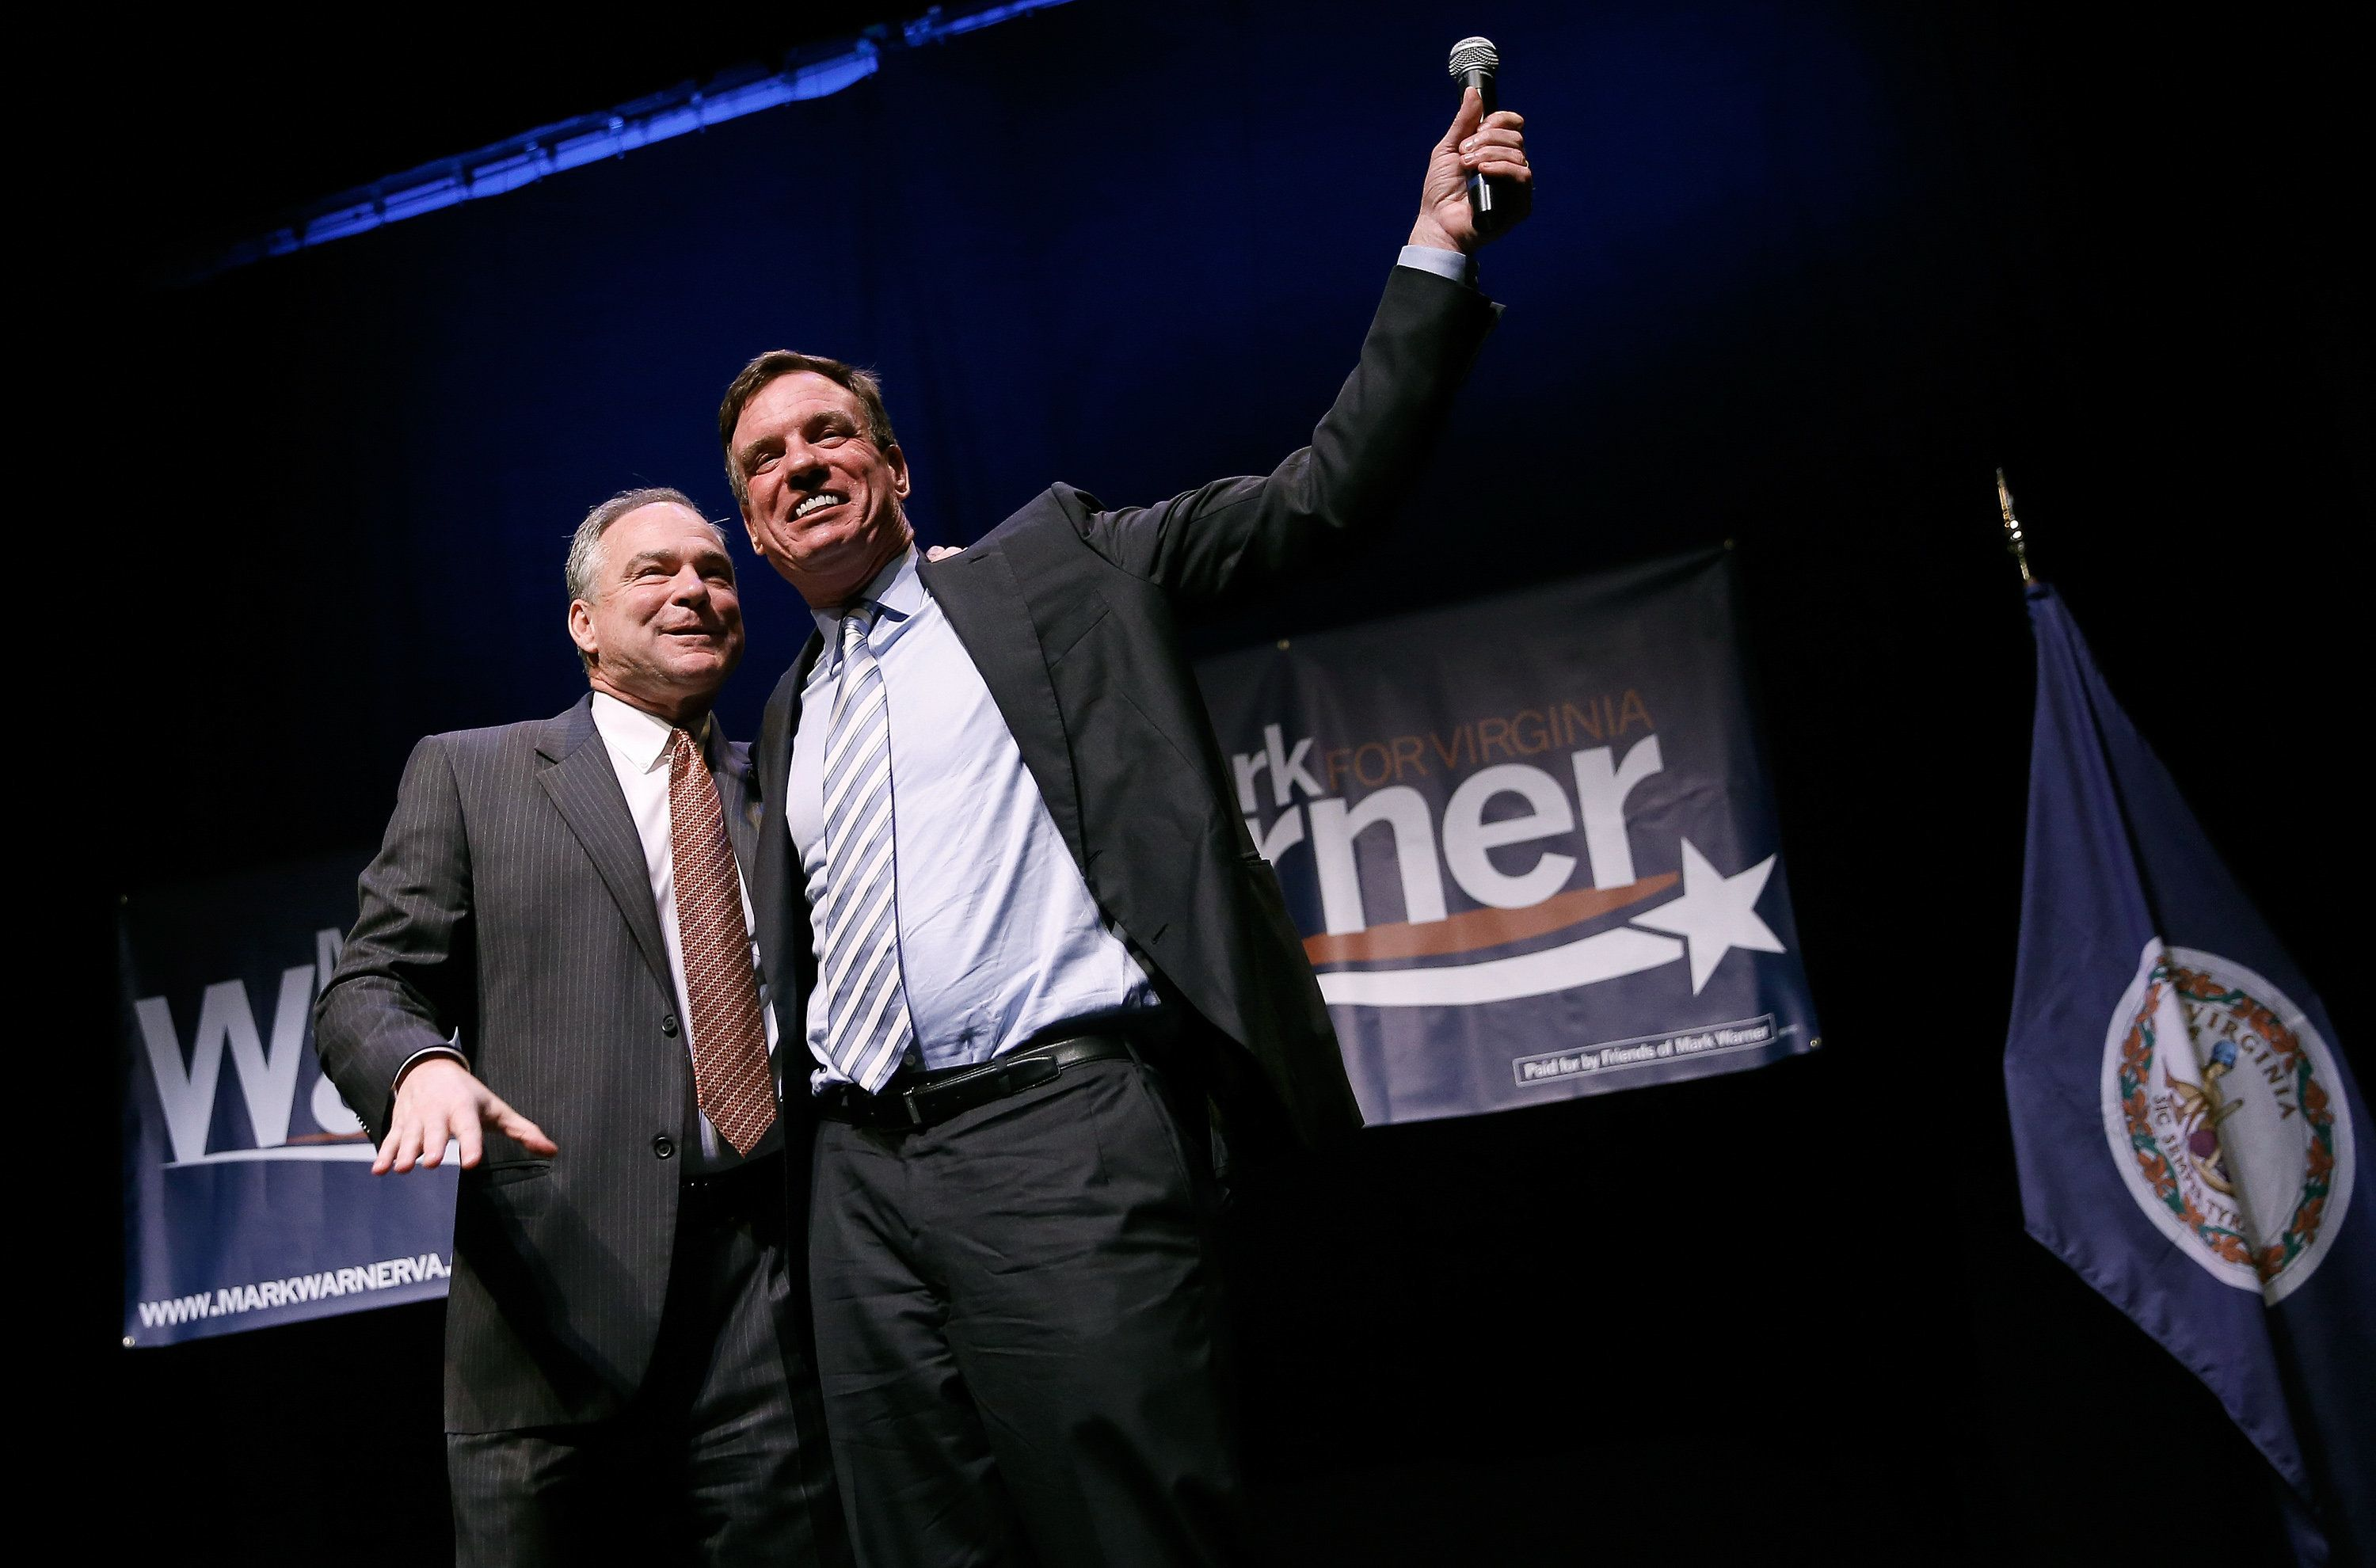 WASHINGTON, DC - MAY 29:  Sen. Mark Warner (D-VA) is introduced by Sen. Tim Kaine (D-VA) during Warner's re-election kickoff rally May 29, 2014 in Arlington, Virginia. Warner is likely to face former Republican National Committee Chairman Ed Gillespie in the general election in November.  (Photo by Win McNamee/Getty Images)